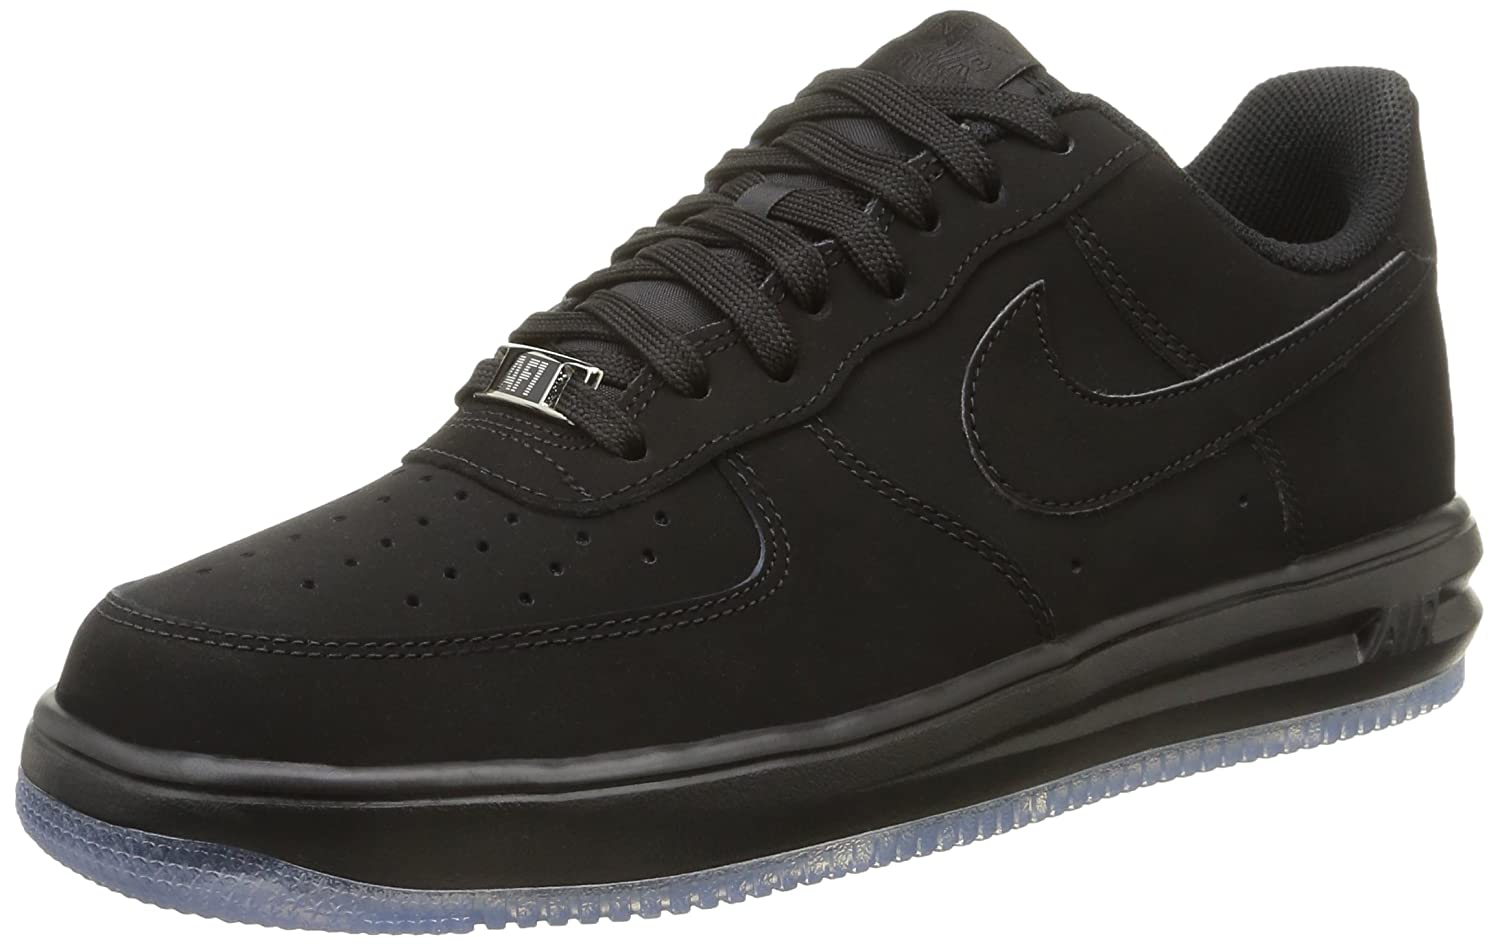 Nike Lunar Force 1 14 Mens Trainers 654256 Sneakers Shoes